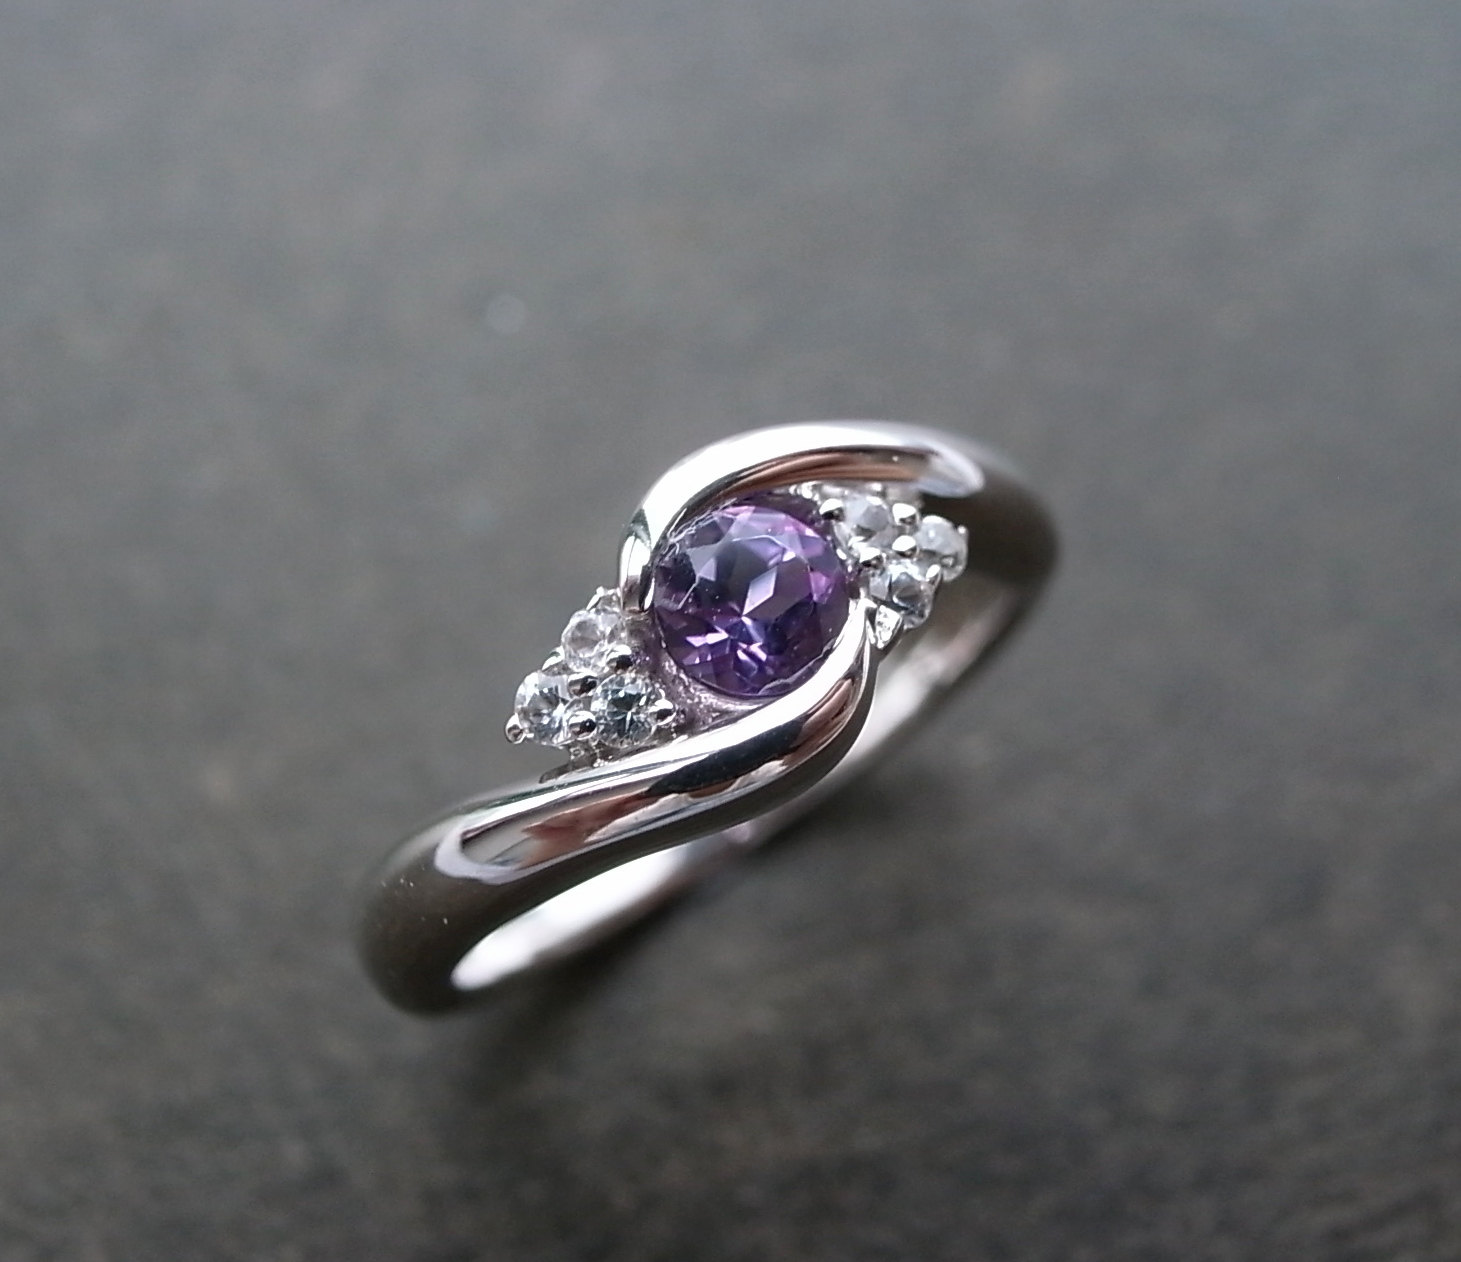 wedding ring with amethyst and white sapphire in 14k white gold - Amethyst Wedding Rings